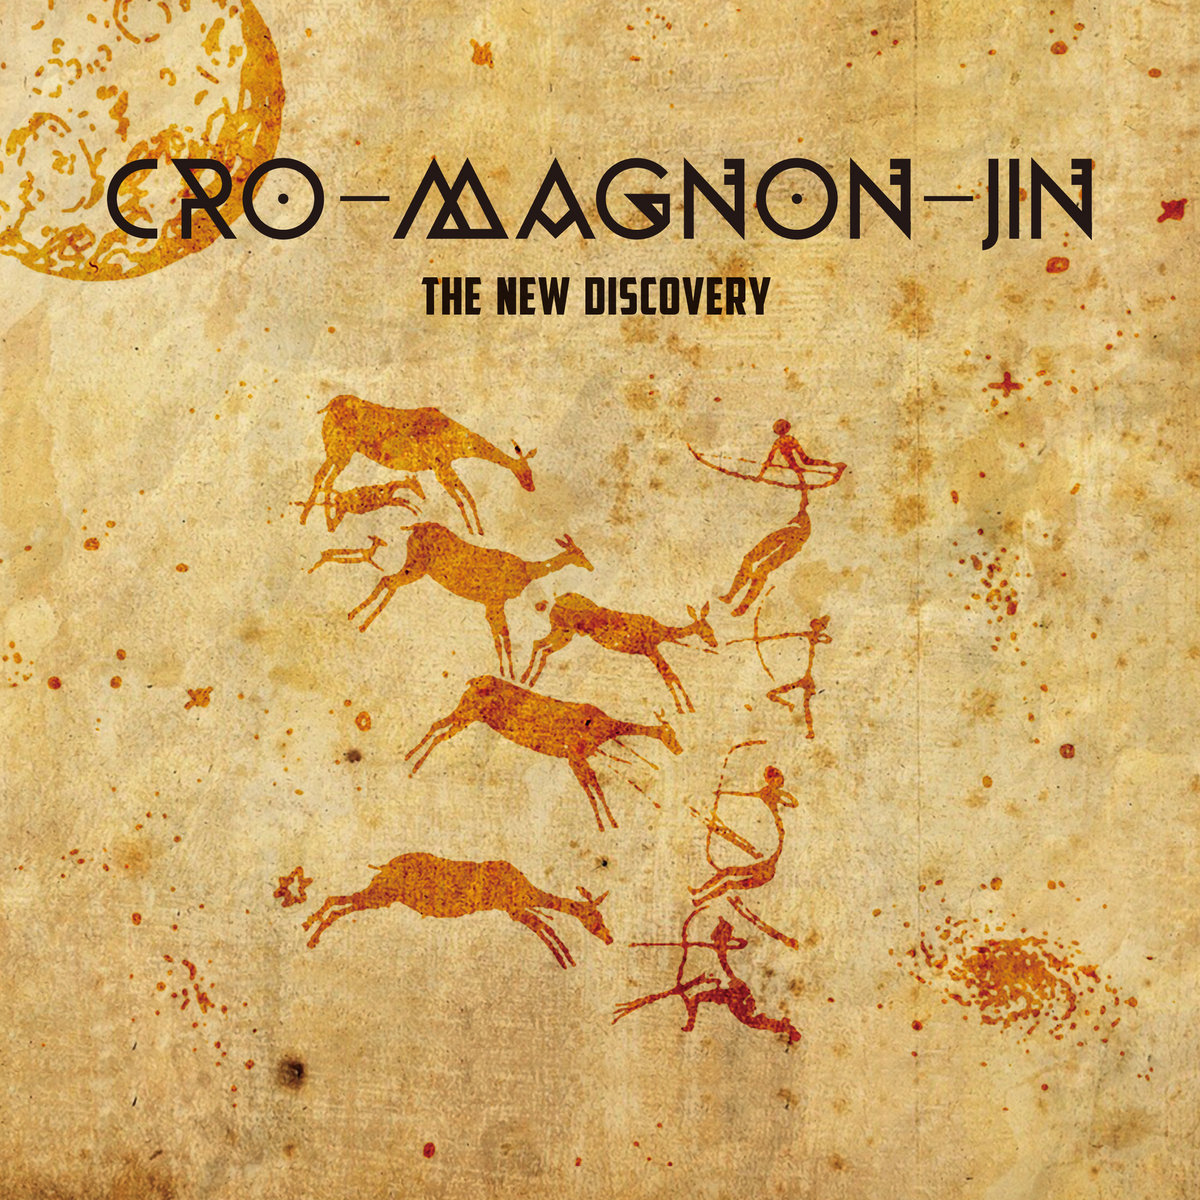 Cro-Magnon-Jin - The New Discovery (2016)